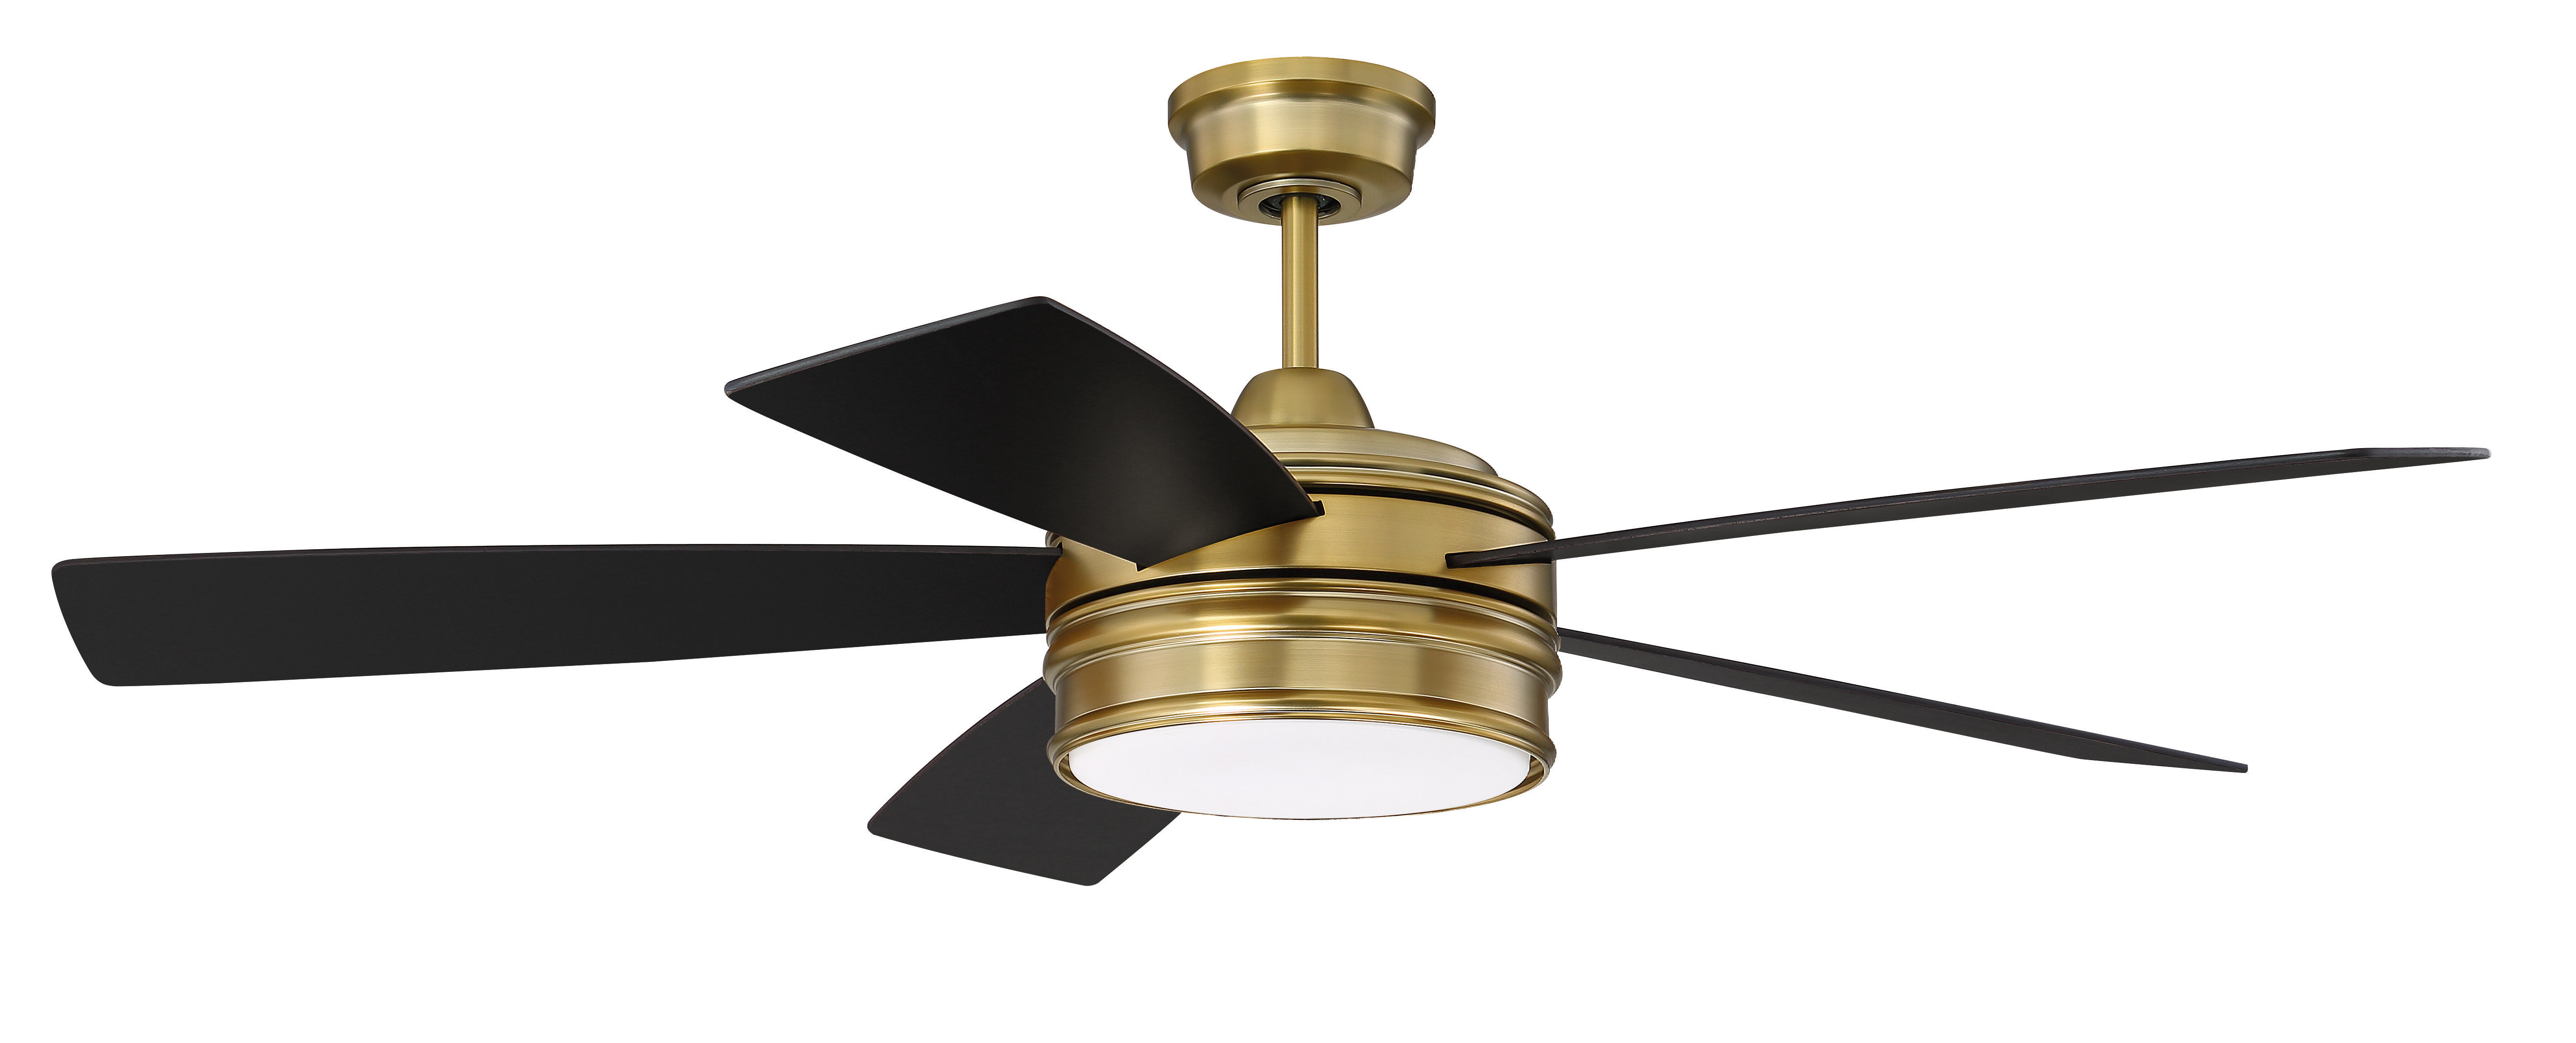 """52"""" Winchcombe 5 Blade Led Ceiling Fan With Remote Light Kit Regarding Preferred Sentinel 3 Blade Led Ceiling Fans With Remote (View 3 of 20)"""